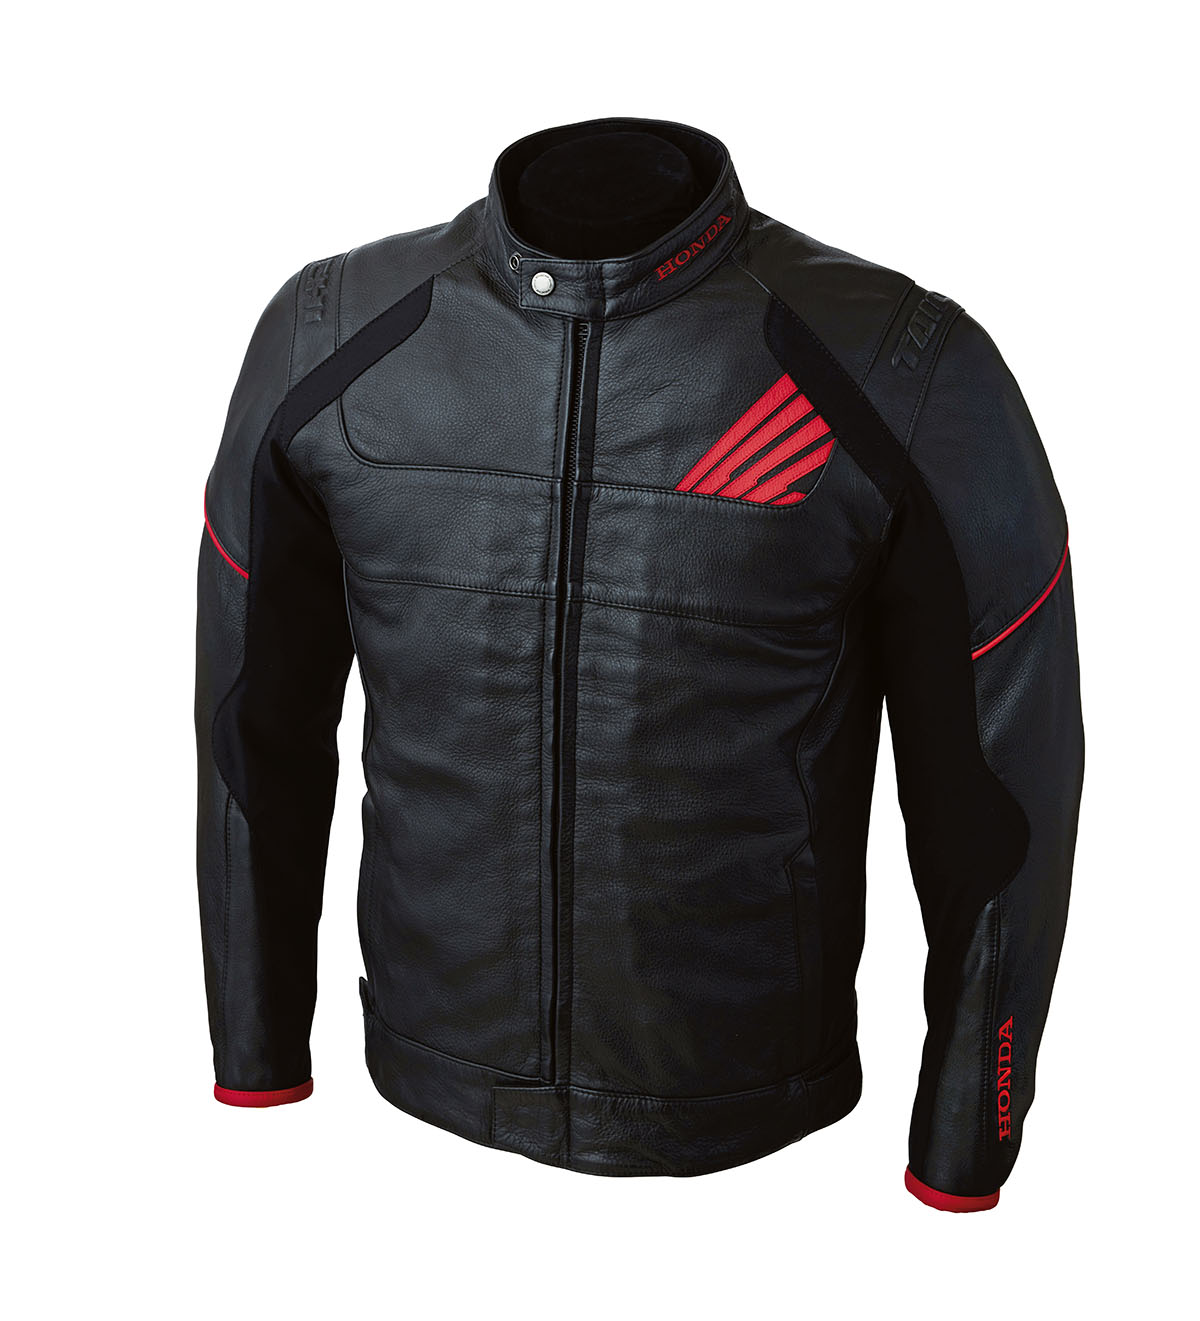 HONDA RIDING GEAR [HONDA x RS TAICHI] Bronx Leather All Season Chaquetas